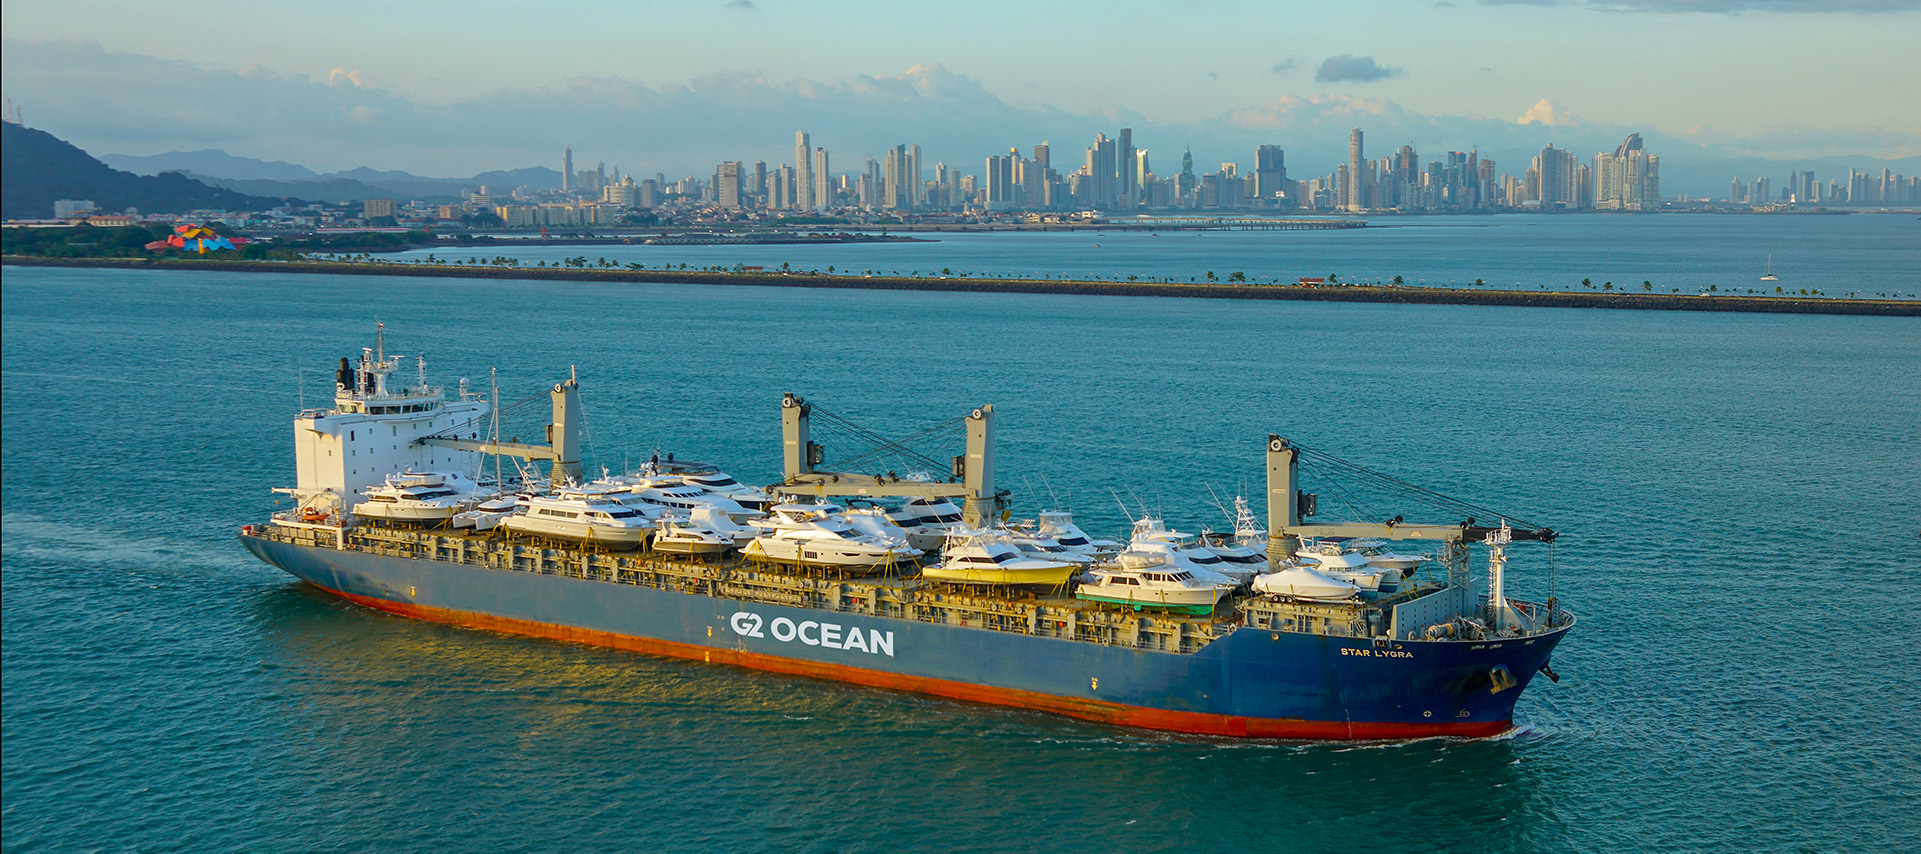 G2 Ocean publishes first whole-year financial report